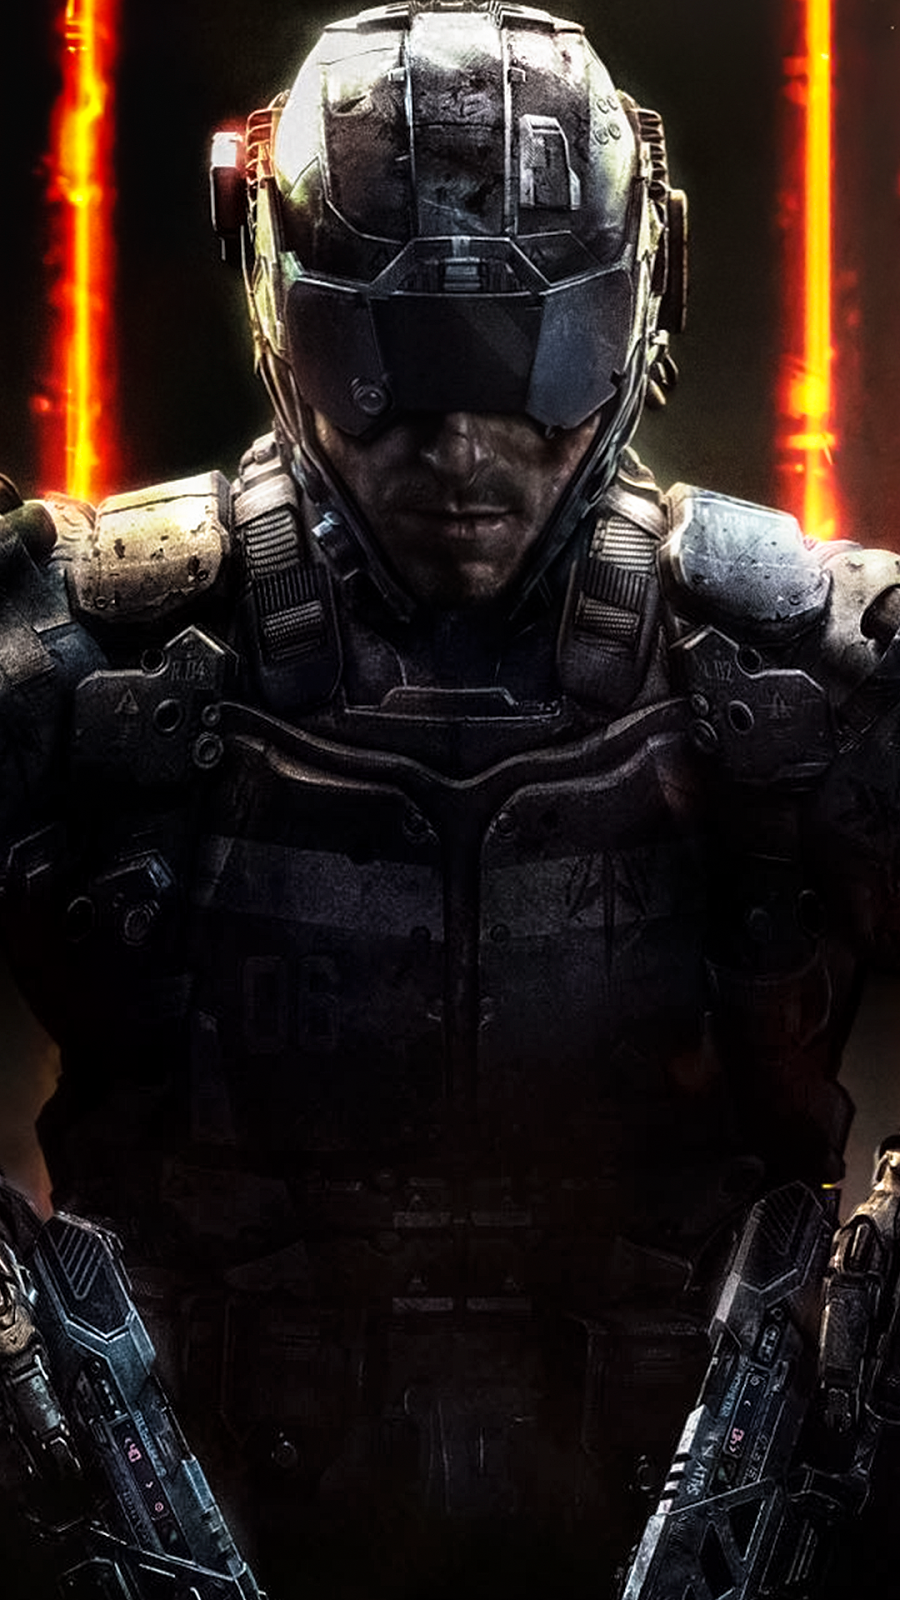 Black Ops 3 Hd Wallpaper For Mobile Wallpapers For Mobile Phones